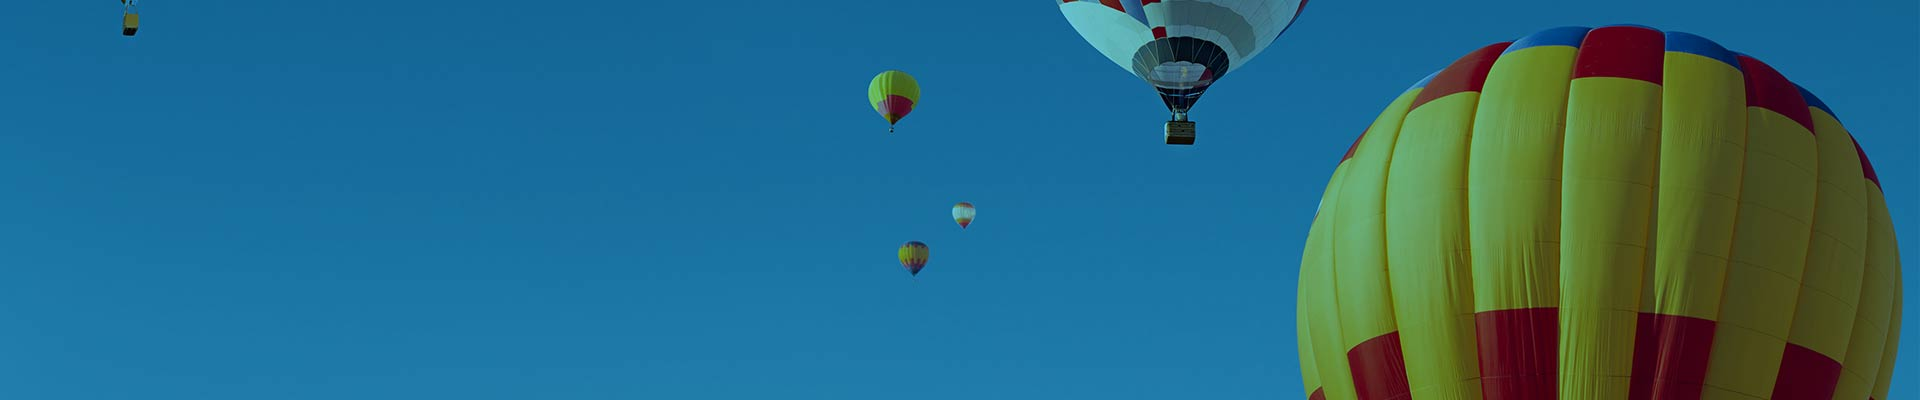 Booking Information for Hot Air Balloon Rides